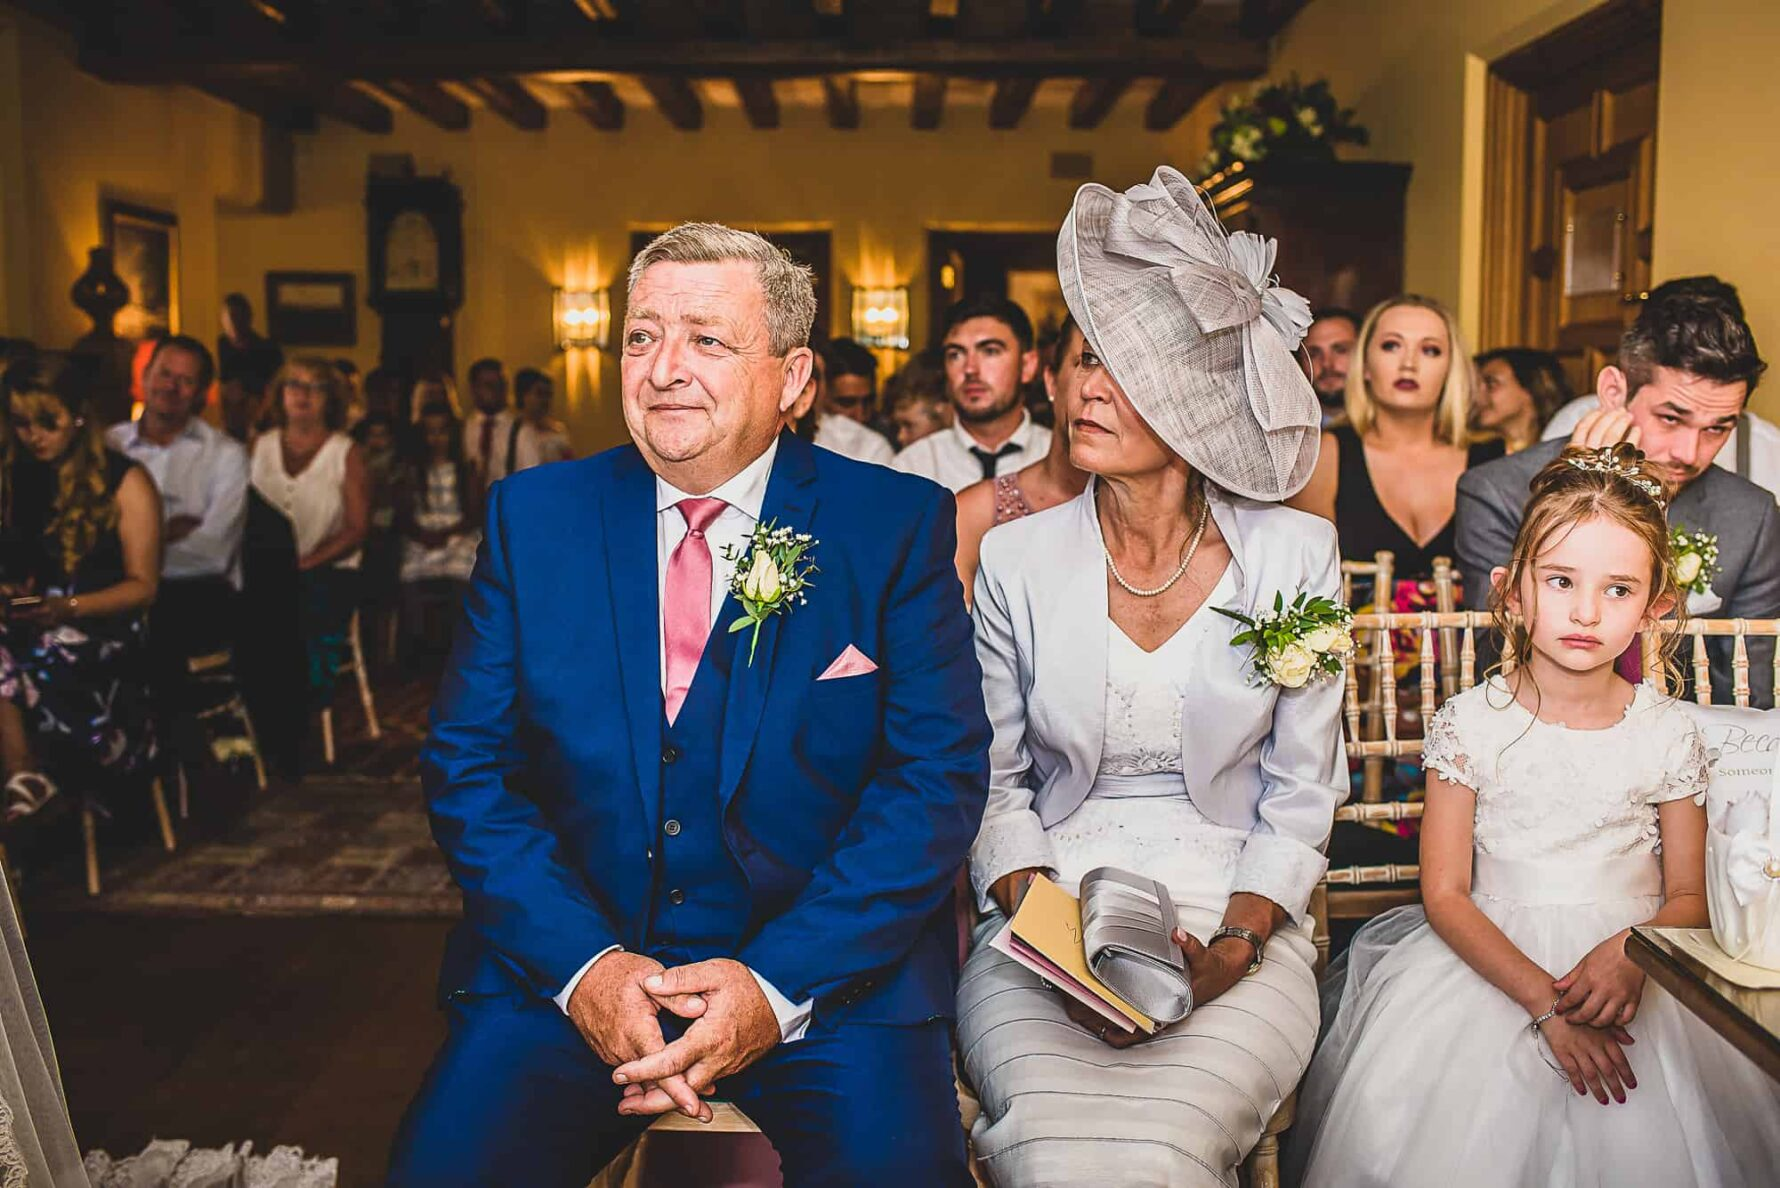 Mother and Father of the Bride look on during ceremony at The Old Hall in Ely